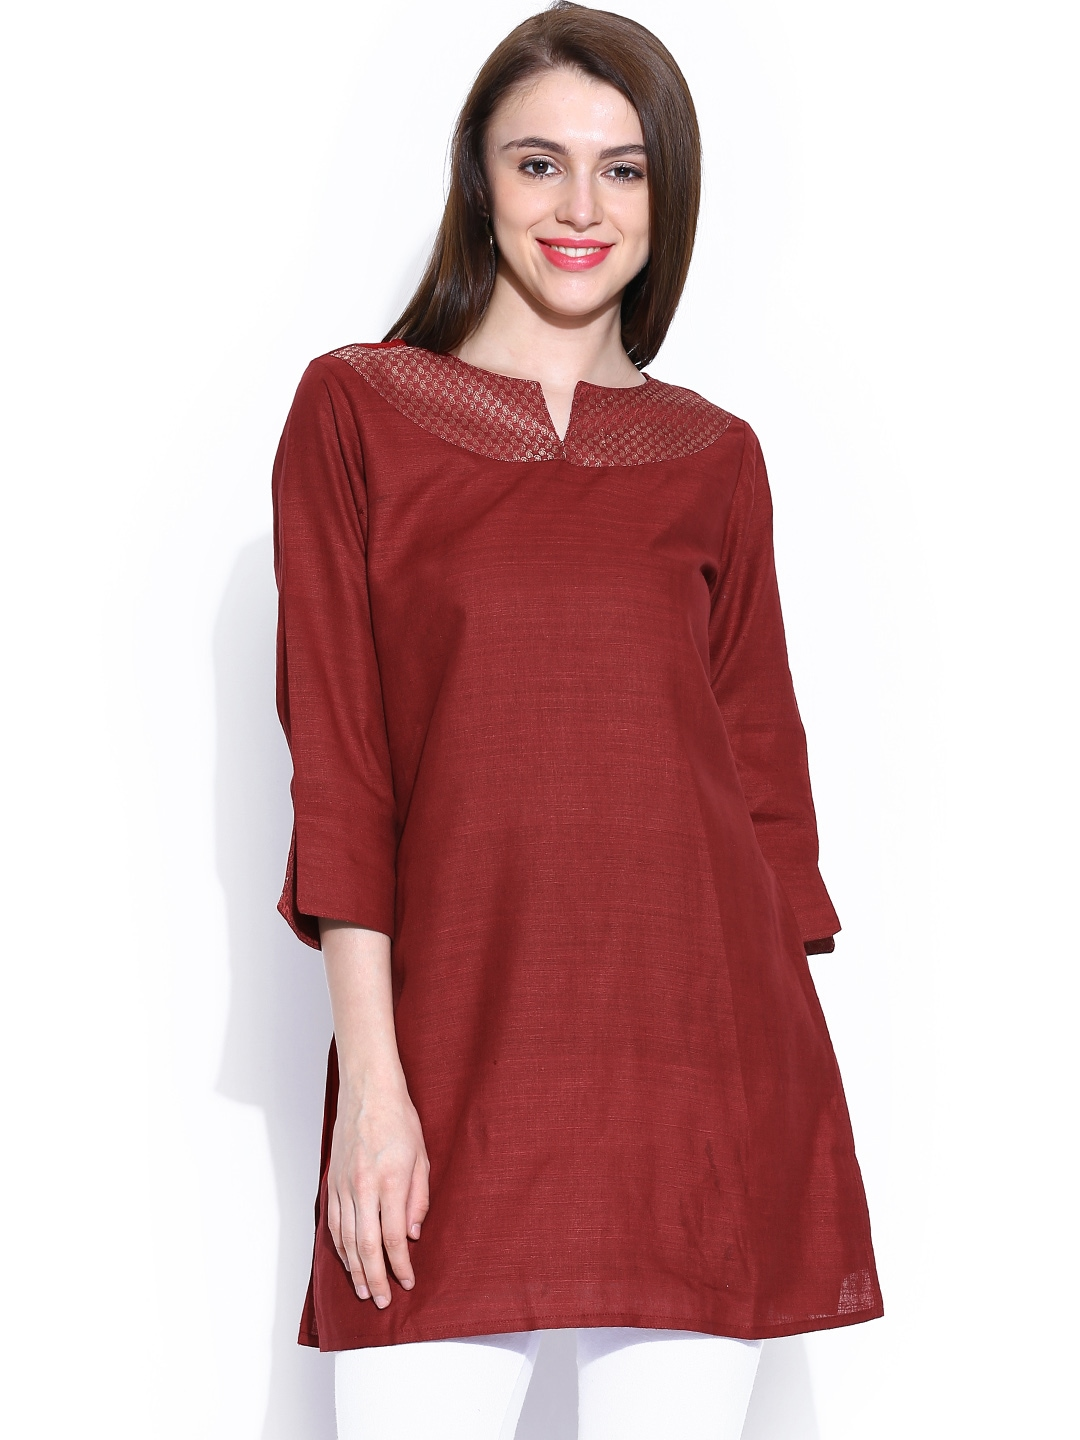 Fabindia clothes online shopping